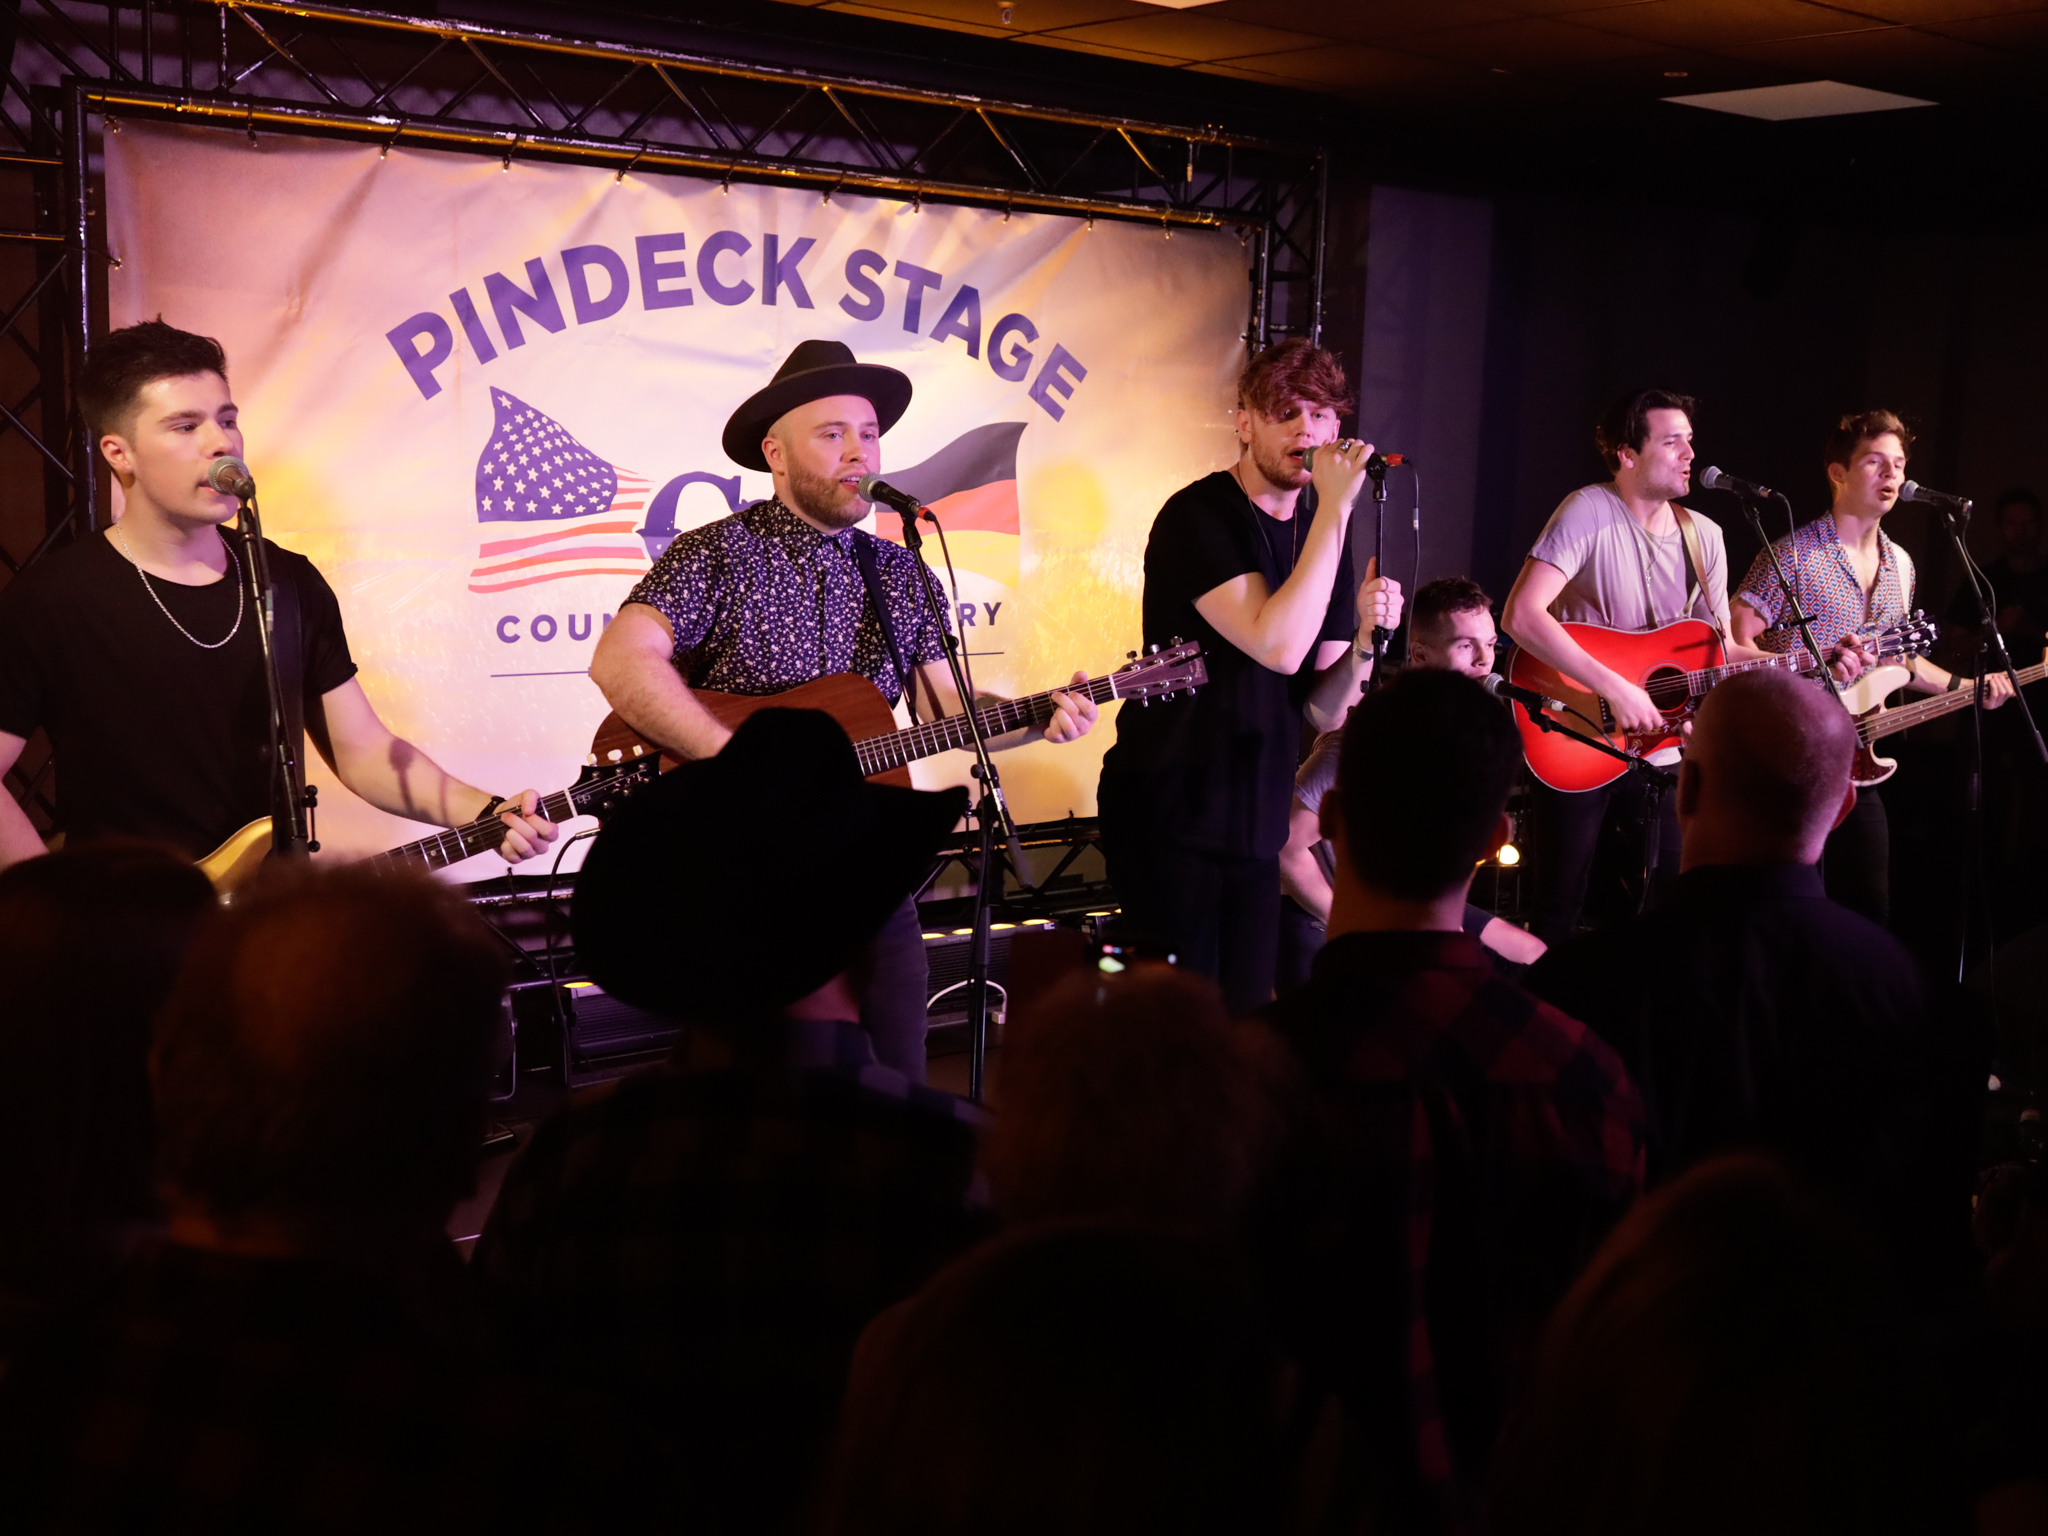 Verti Music Hall - C2C 2020 - Pindeck Stage - King Calaway